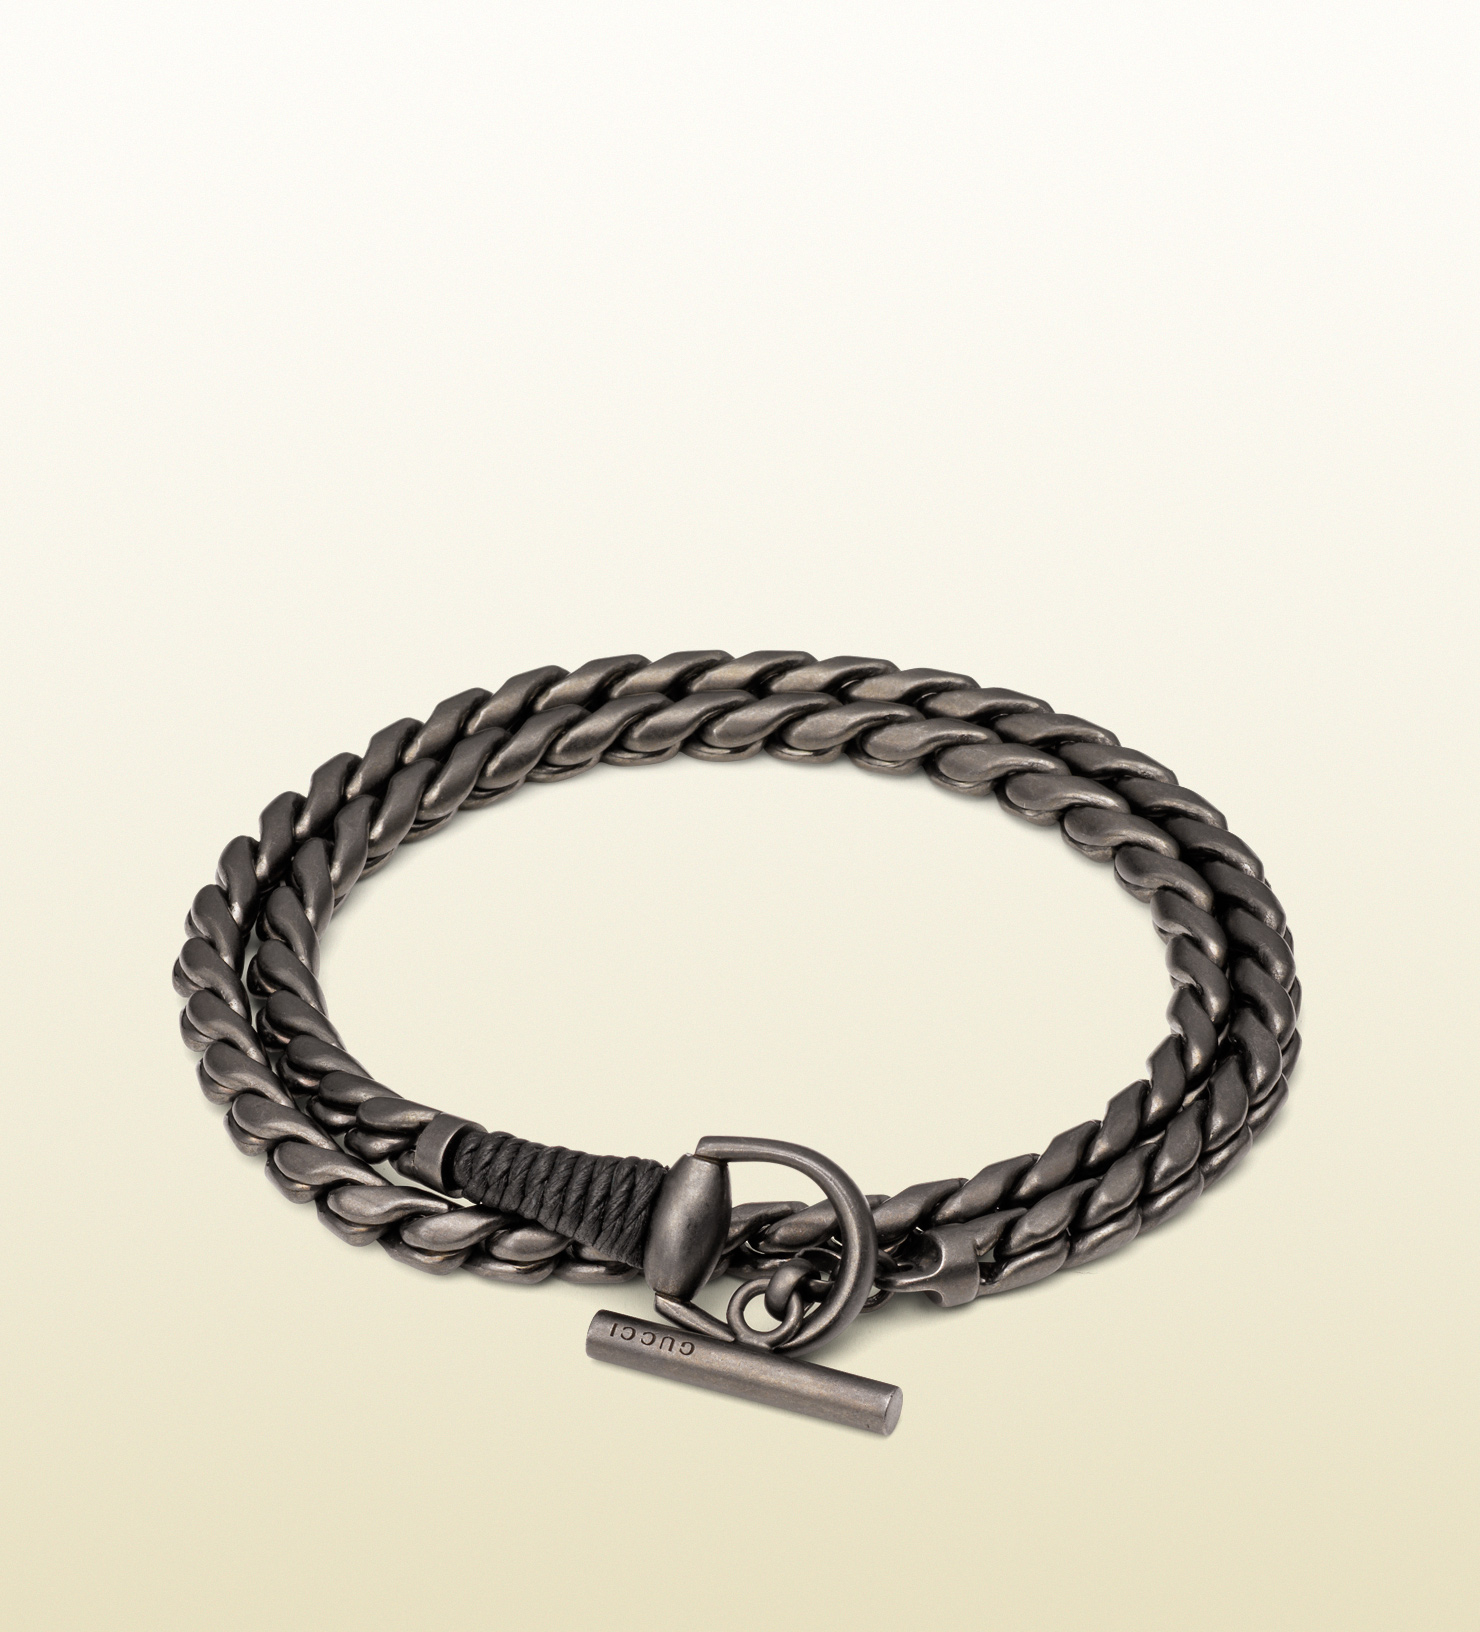 gucci silver horsebit bracelet with leather wrap in silver